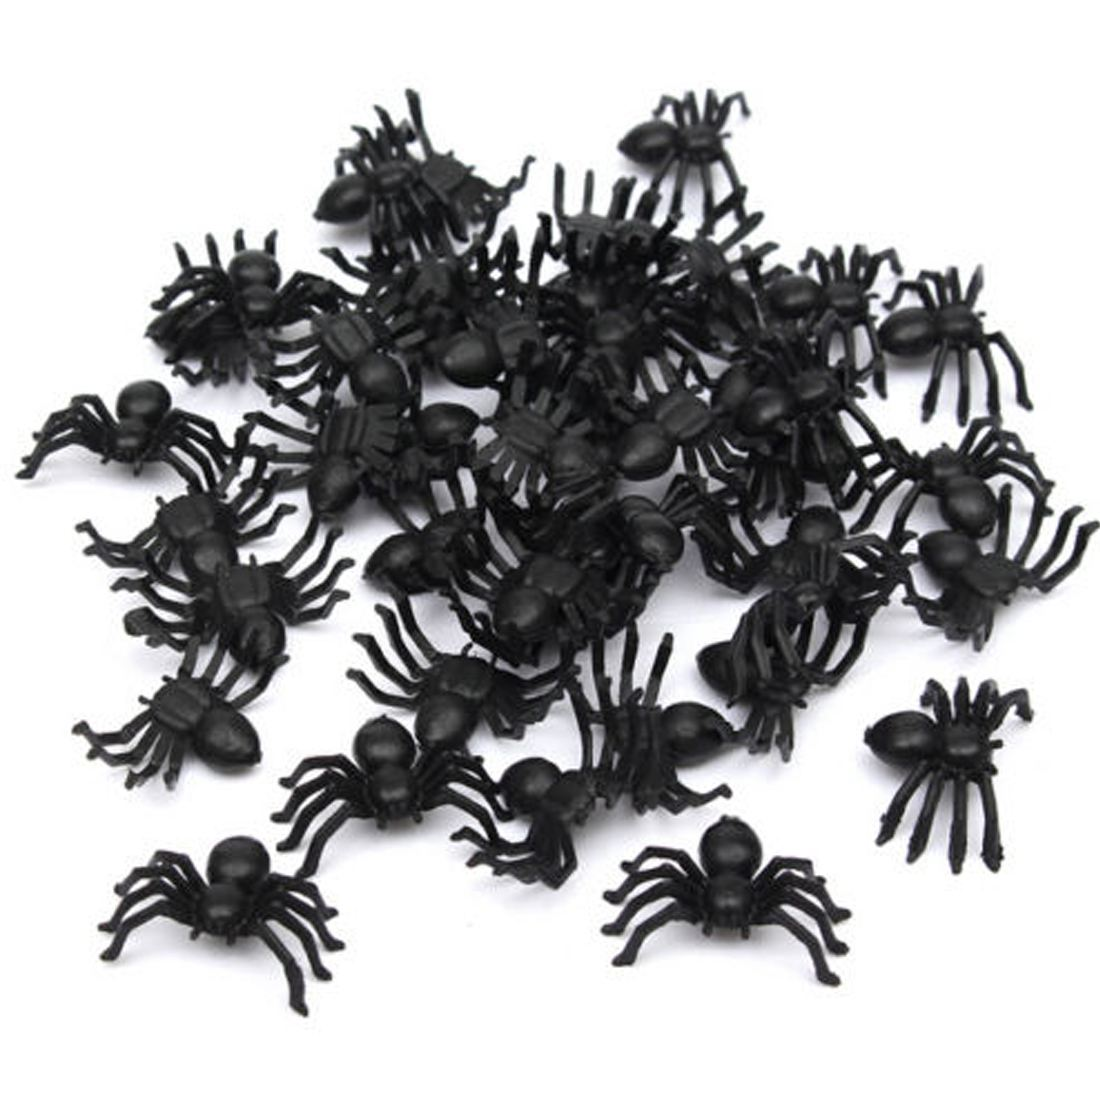 50pcs 2*1.4cm Plastic Black Spider Halloween Decoration Festival Supplies Funny Prank Toys Decoration Realistic Prop